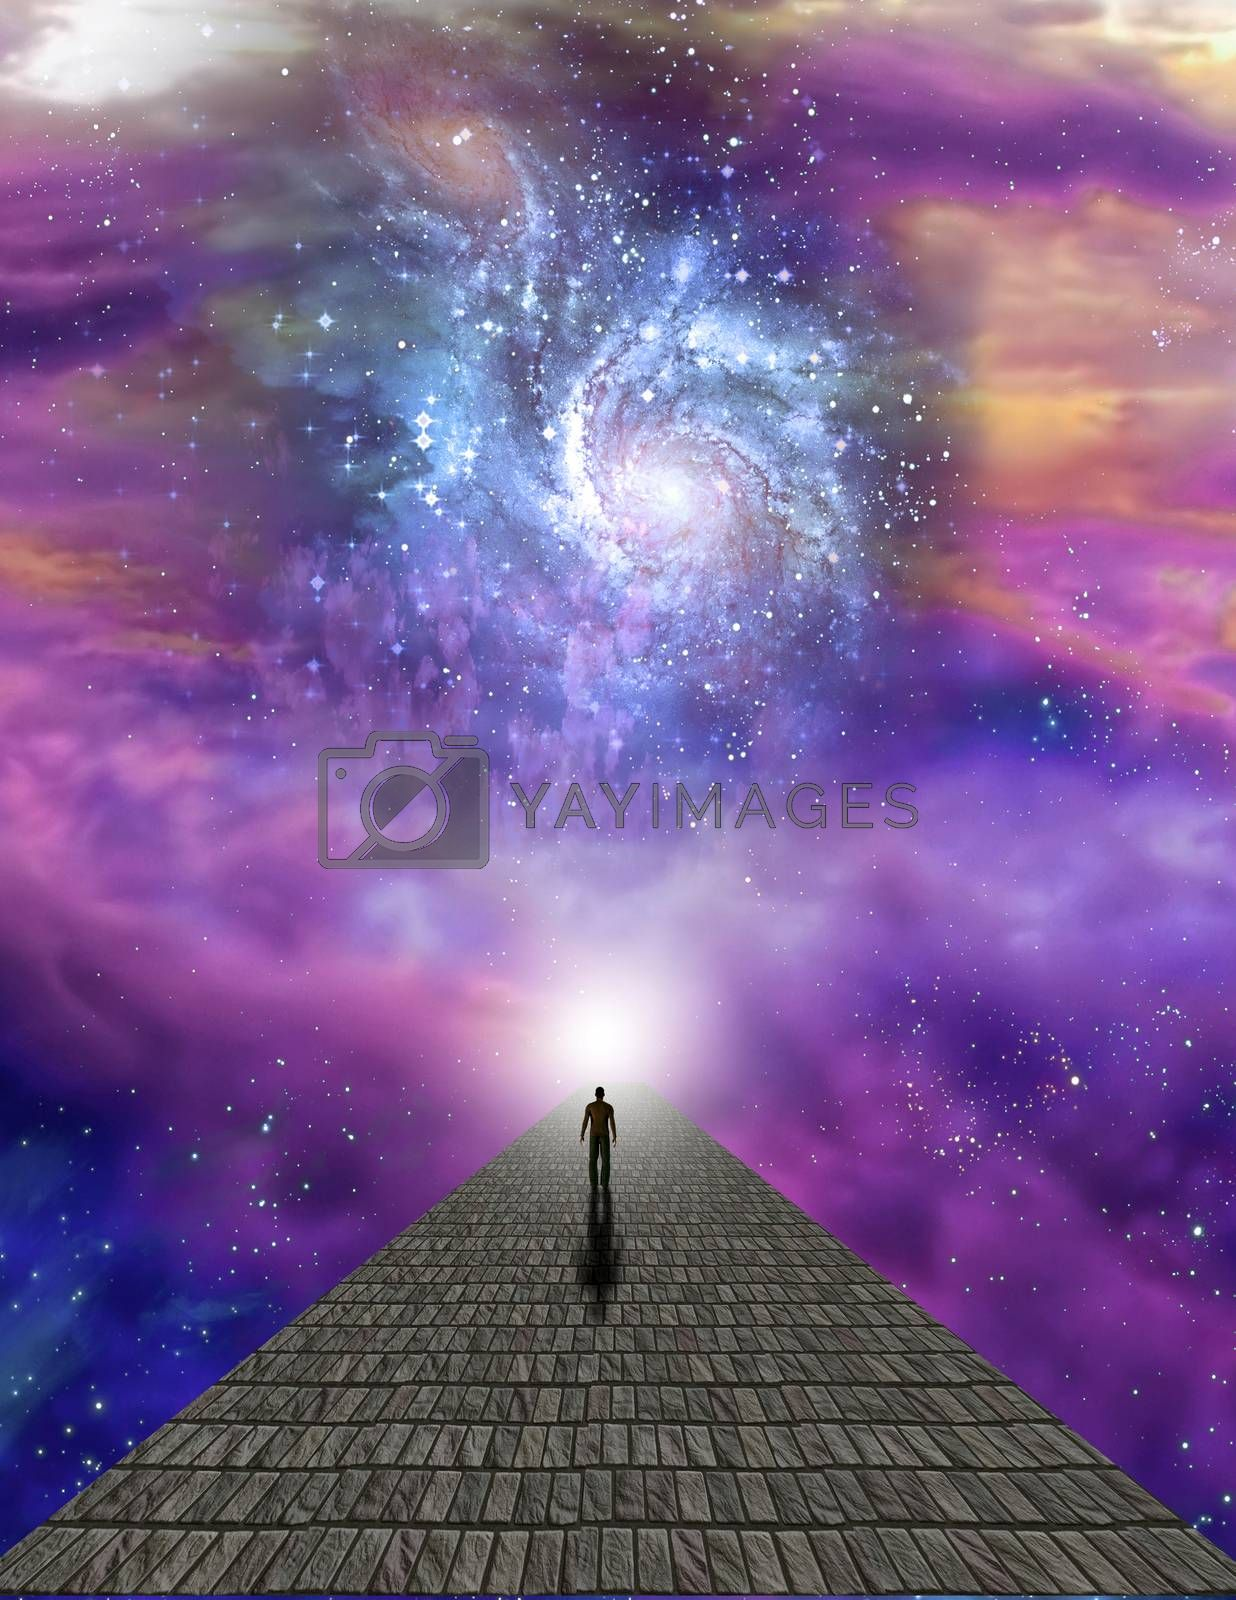 Lonely man on stone road in vivid space. Vivid galaxies, stars and planets. 3D rendering